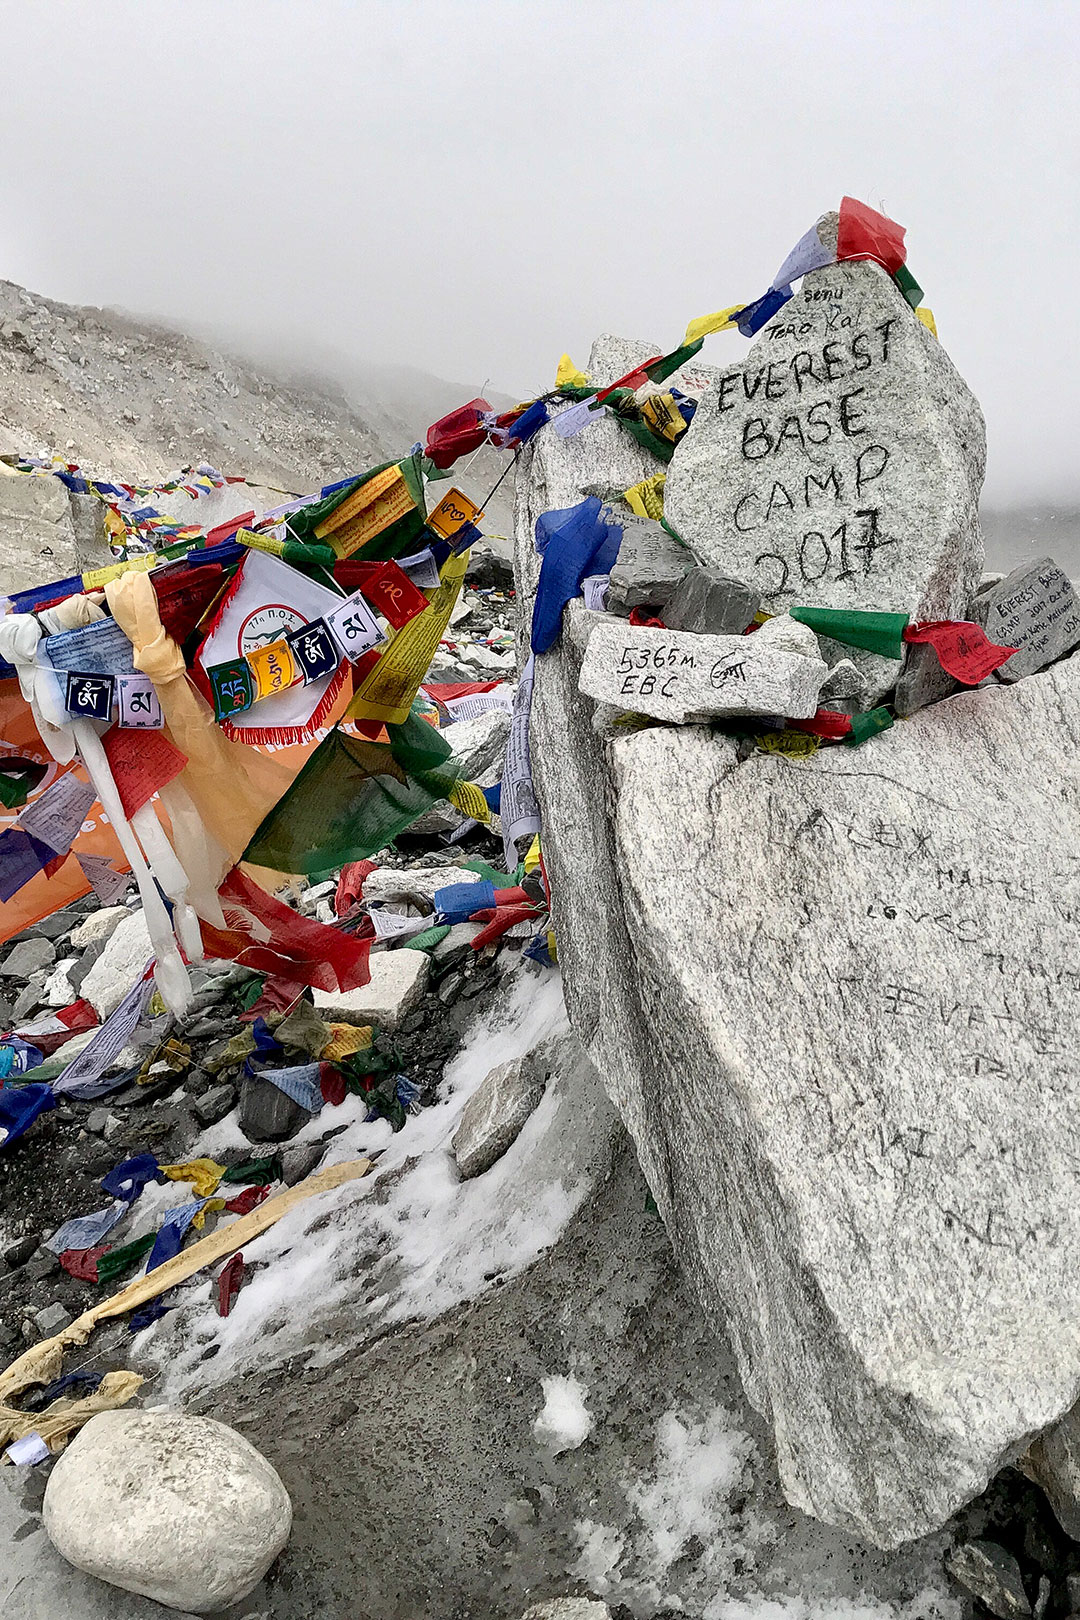 Everest Base Camp Trekking + 25 Best Places to Hike in the World